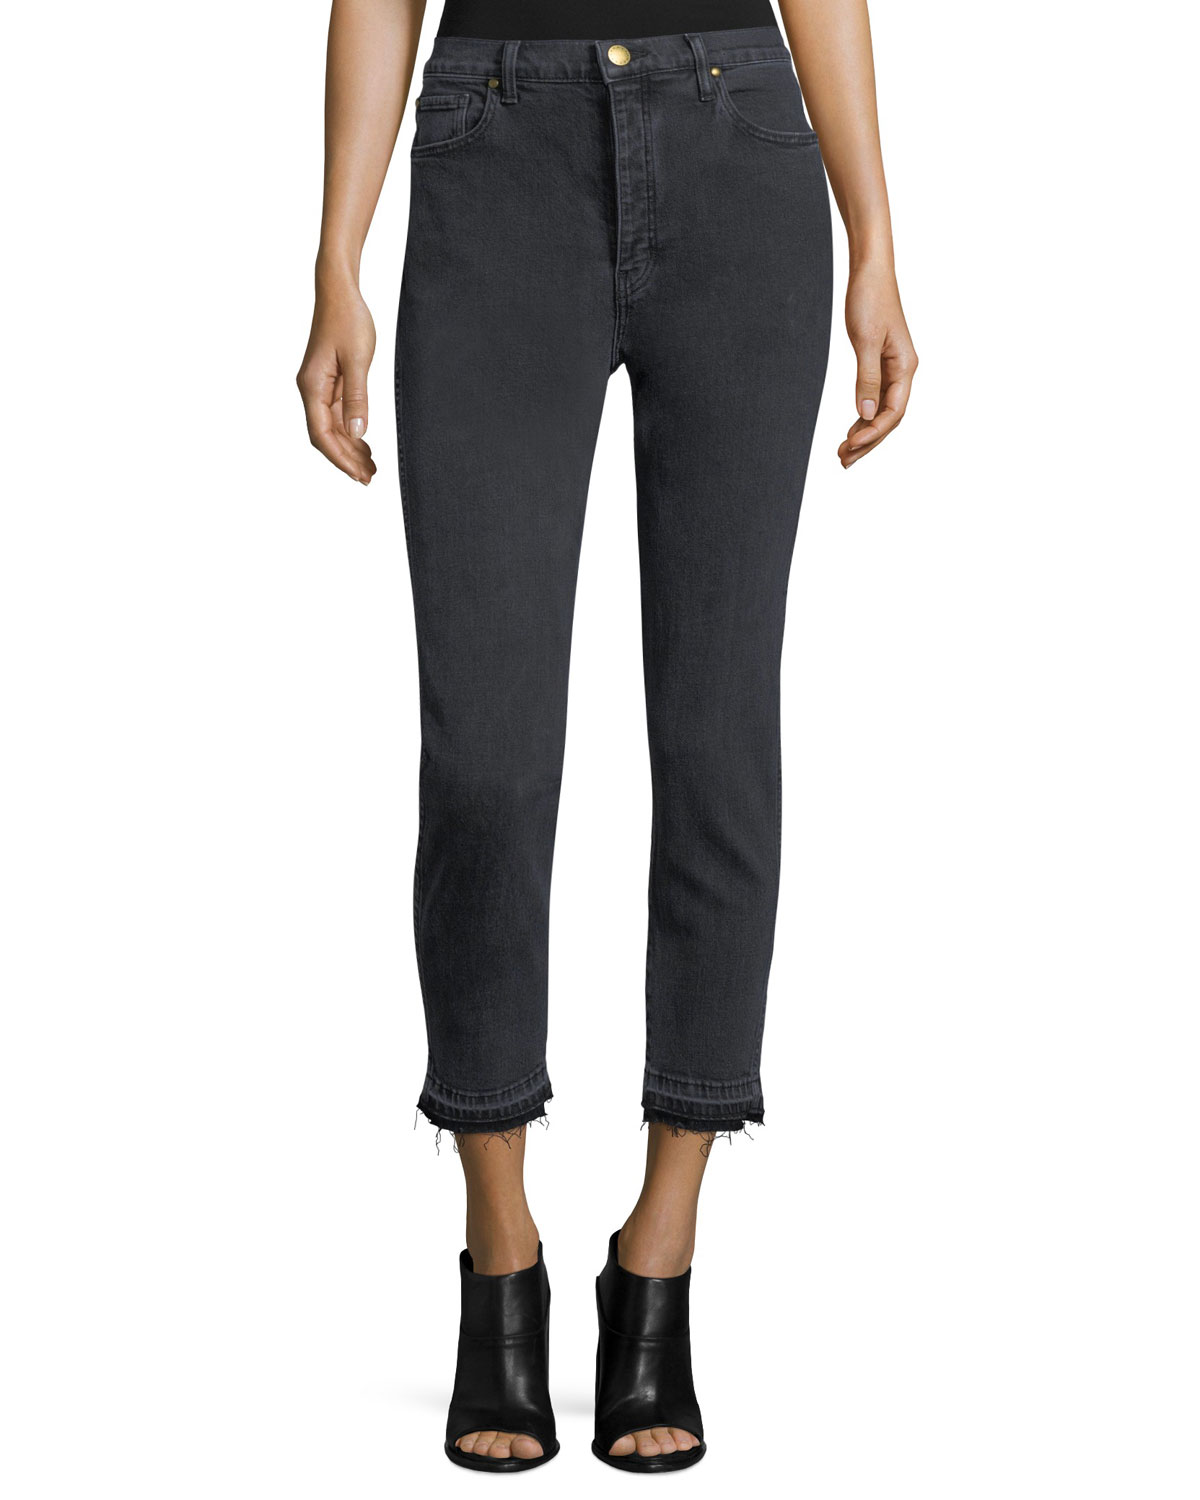 The Fellow Vintage Cropped Jeans